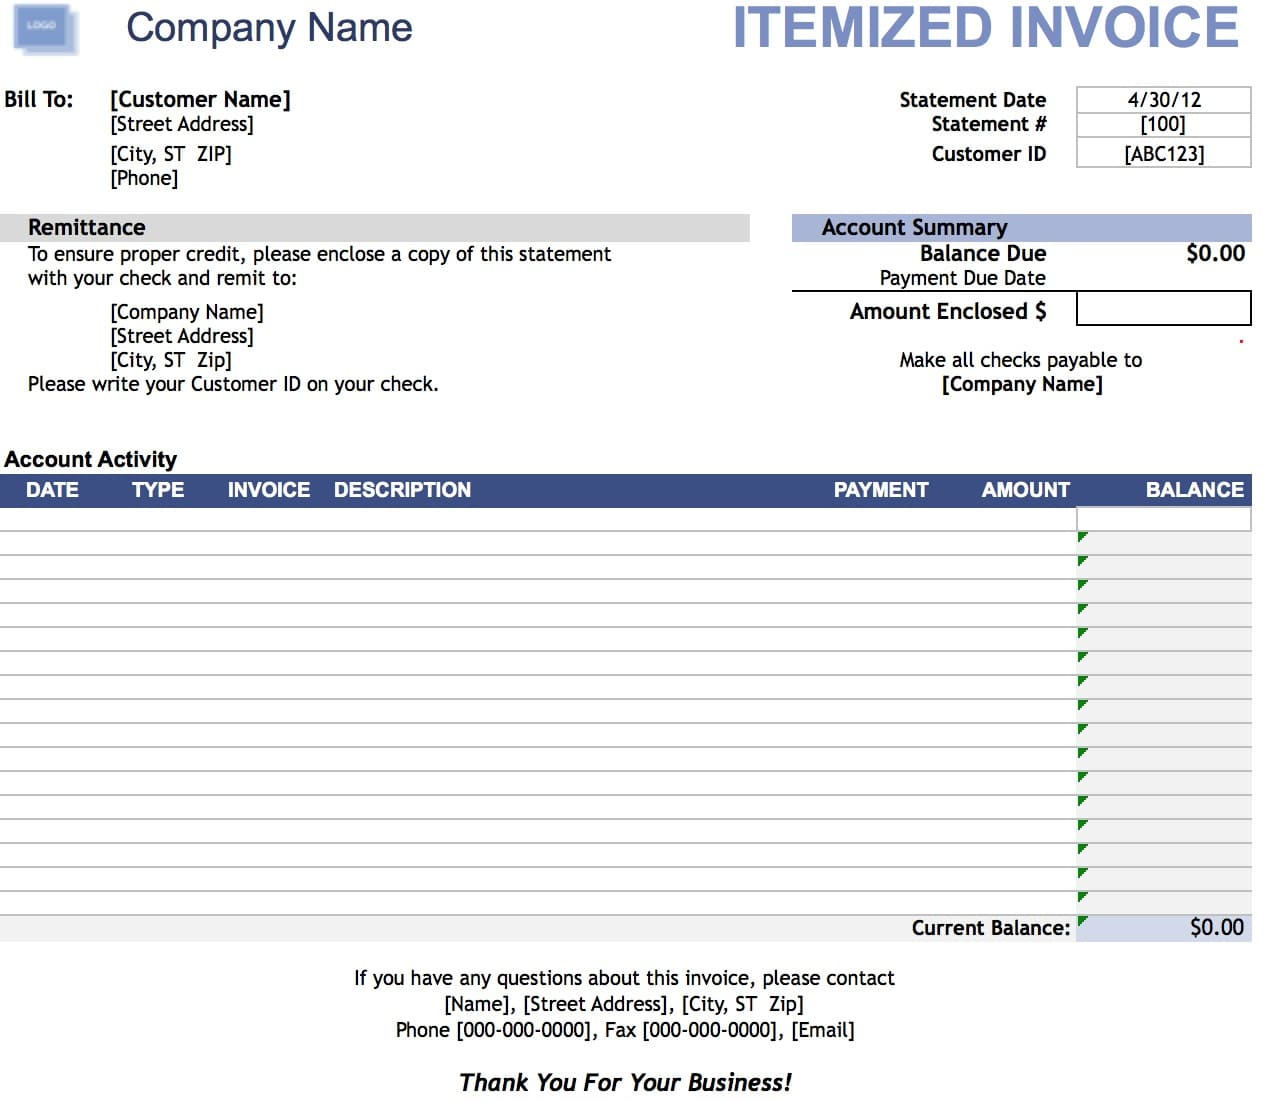 Free Itemized Invoice Template Excel PDF Word Doc - Microsoft excel invoice template free download for service business